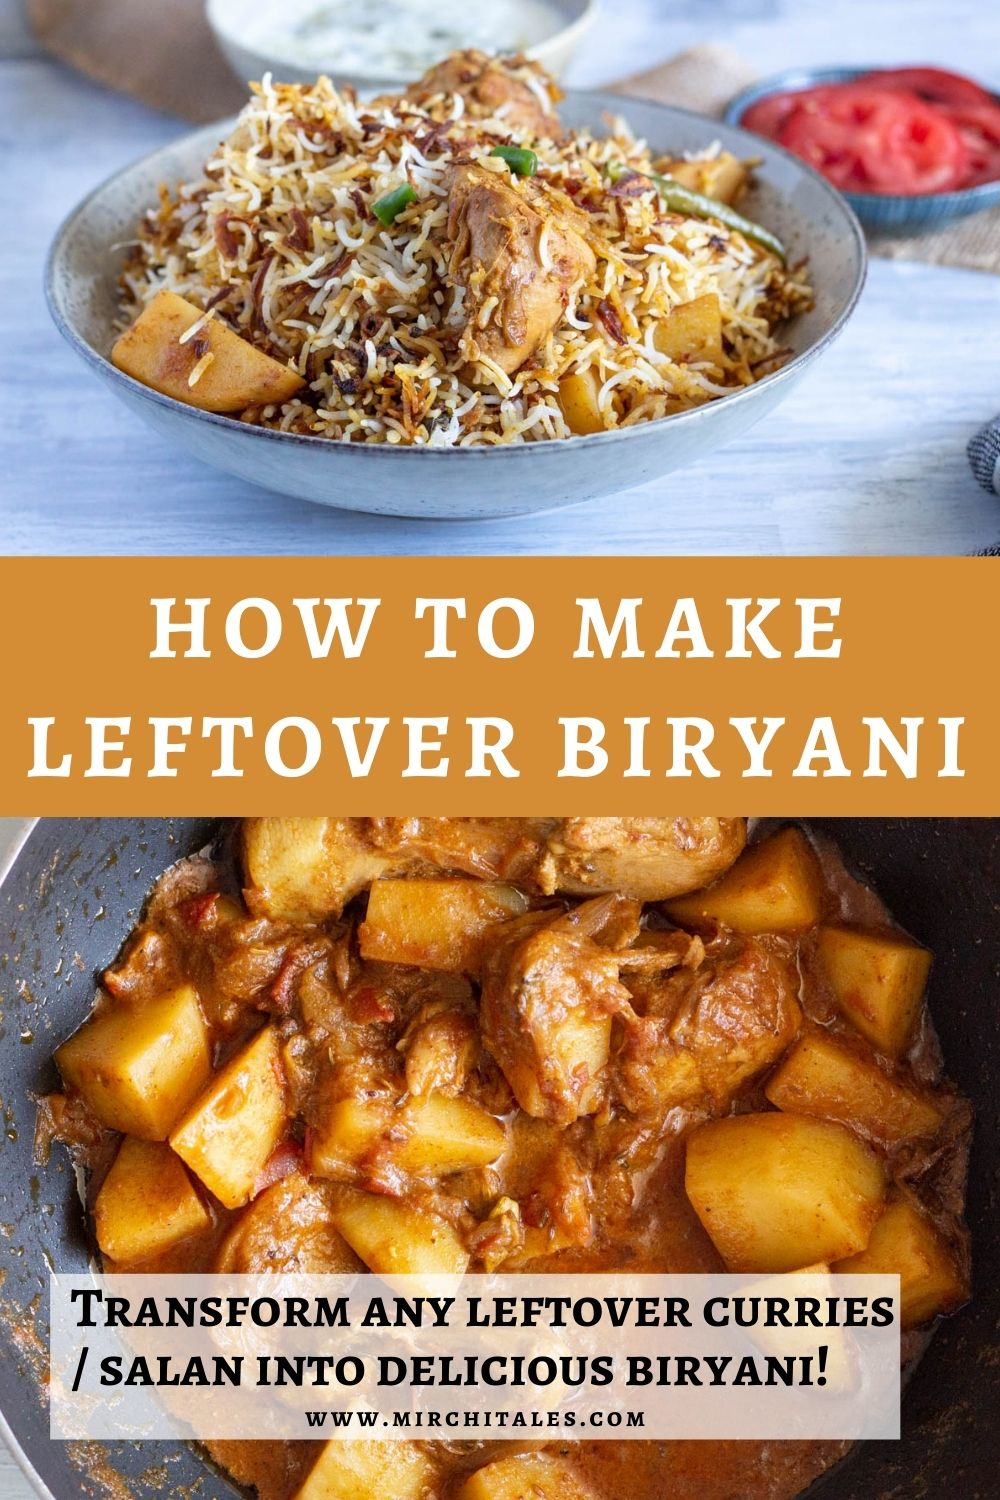 A bowl of leftover chicken biryani with potatoes in a greenish-white bowl with a bowl of yoghurt raita in the background. Below this image is text that states ' how to make leftover biryani'. Below the text is another image of leftover chicken biryani masala with potatoes in a frying pan.